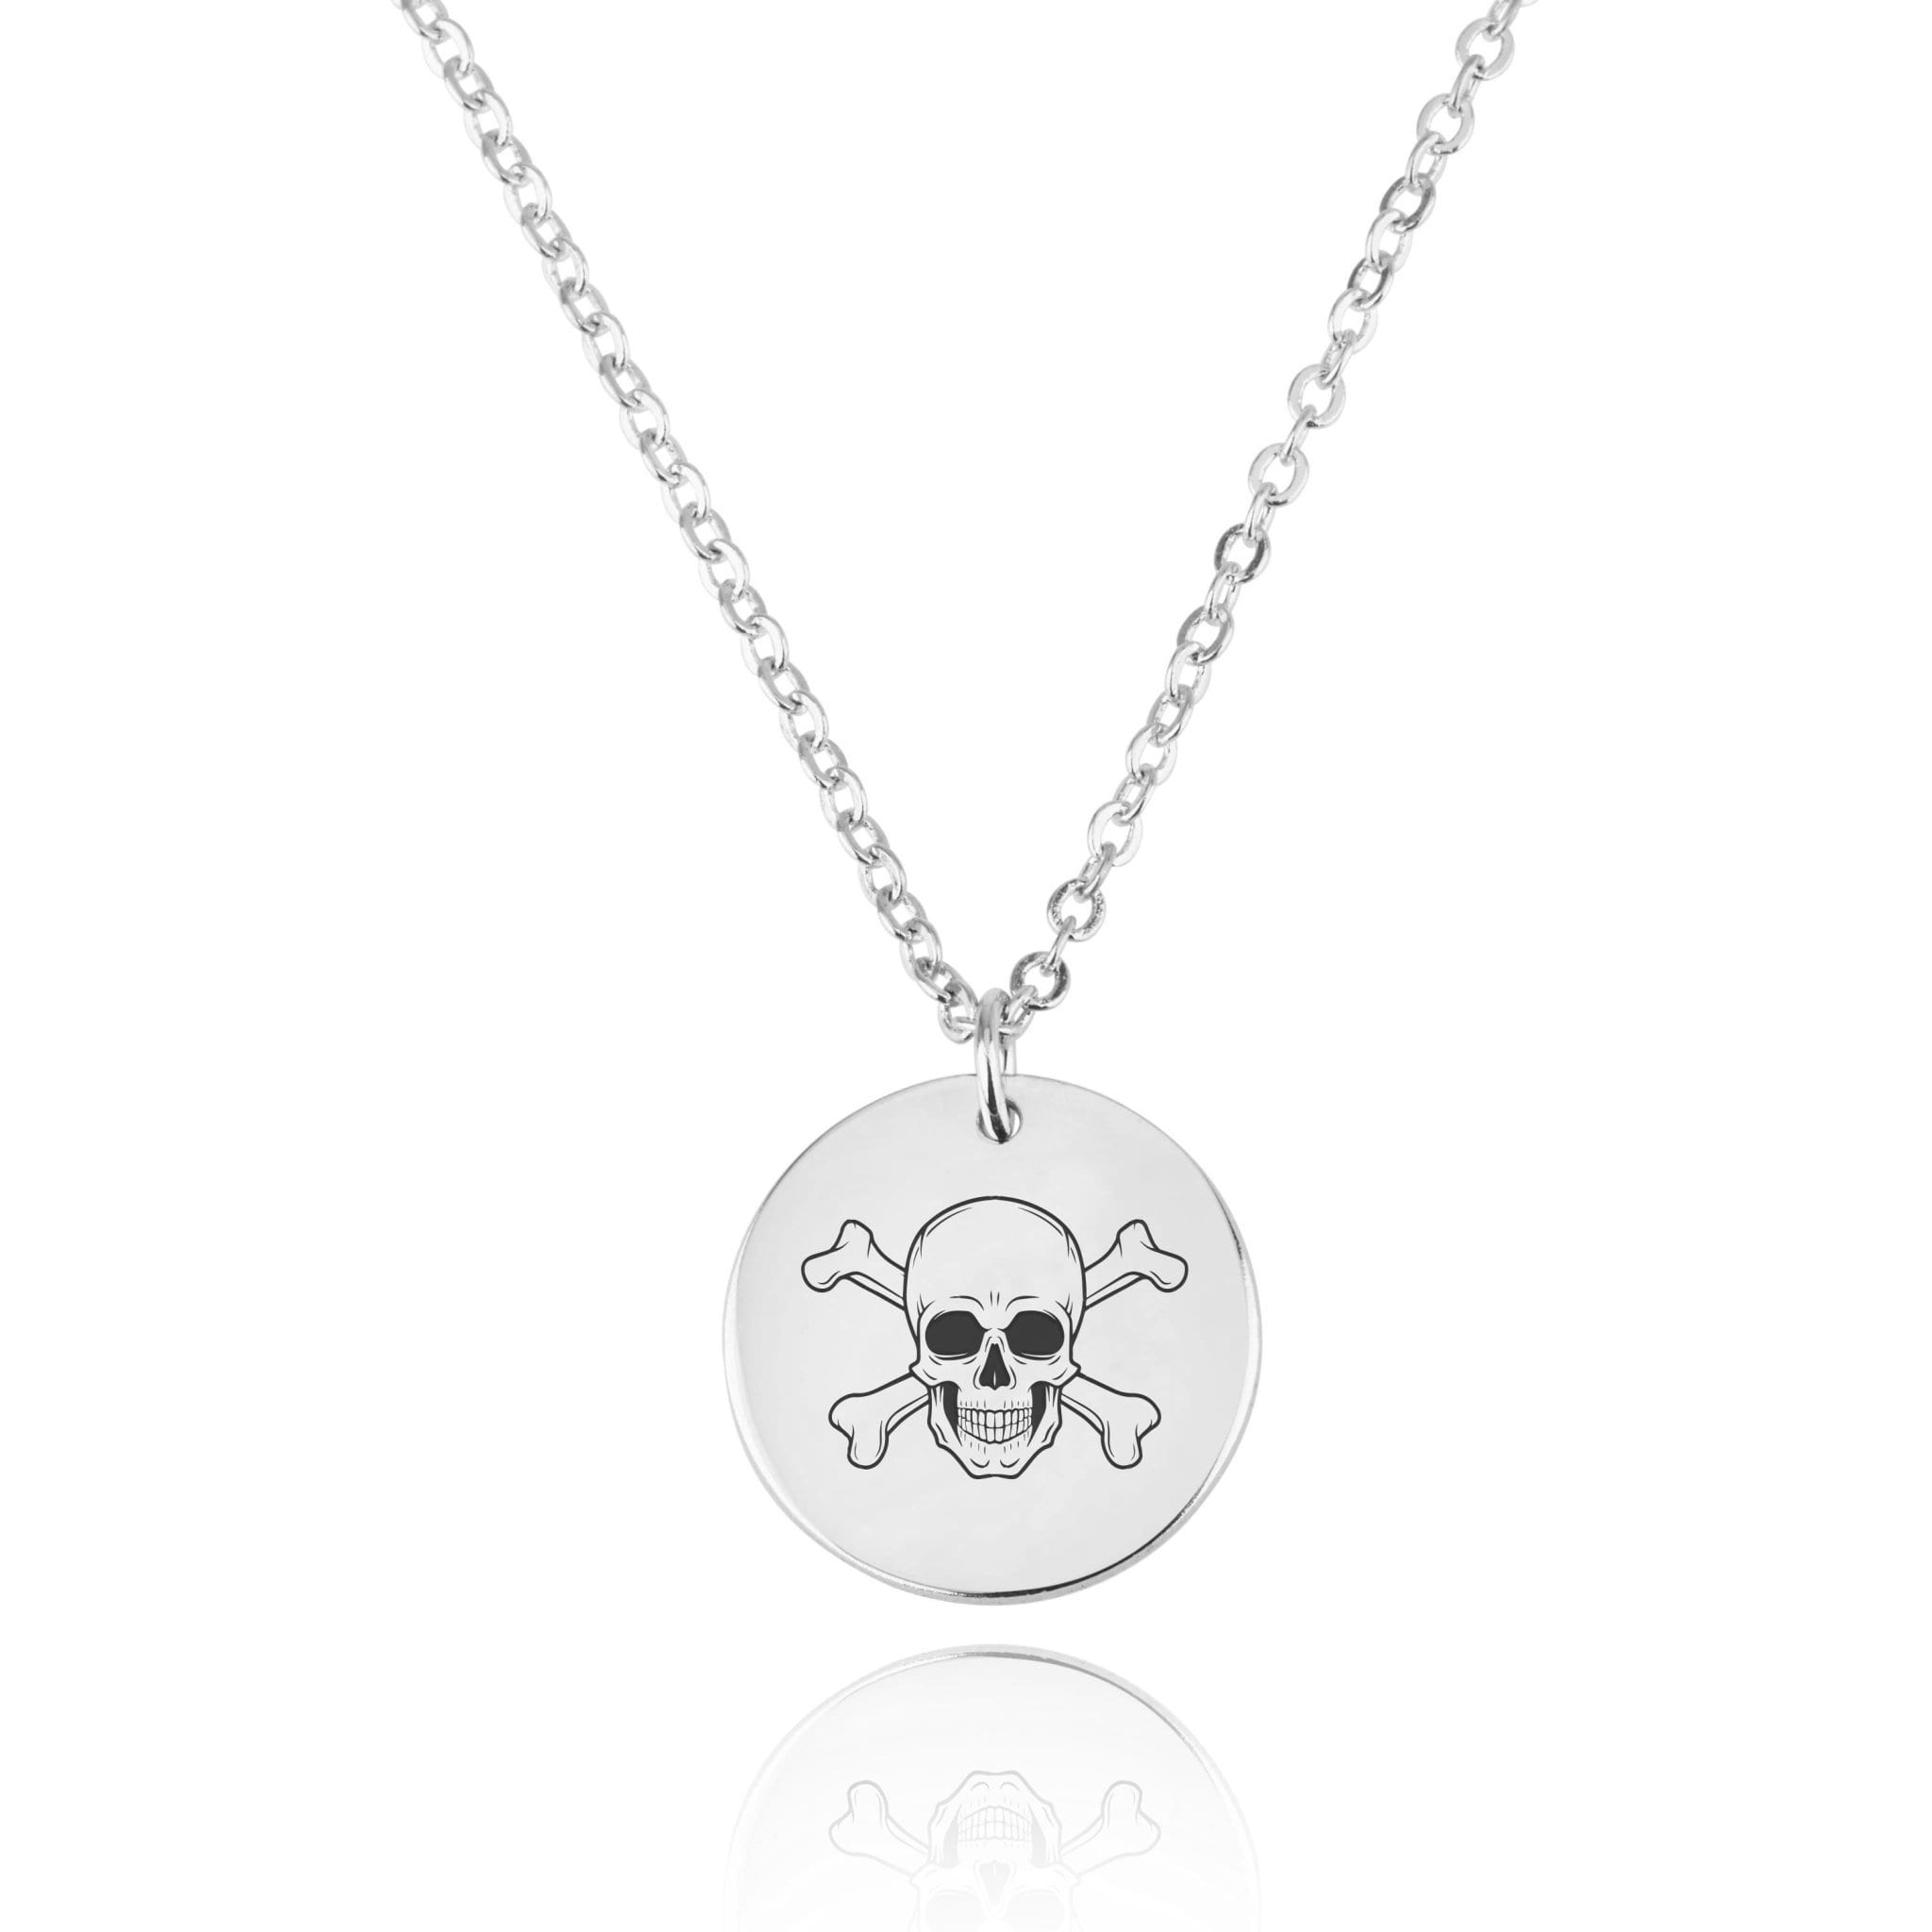 Skull Engraving Disc Necklace - Beleco Jewelry